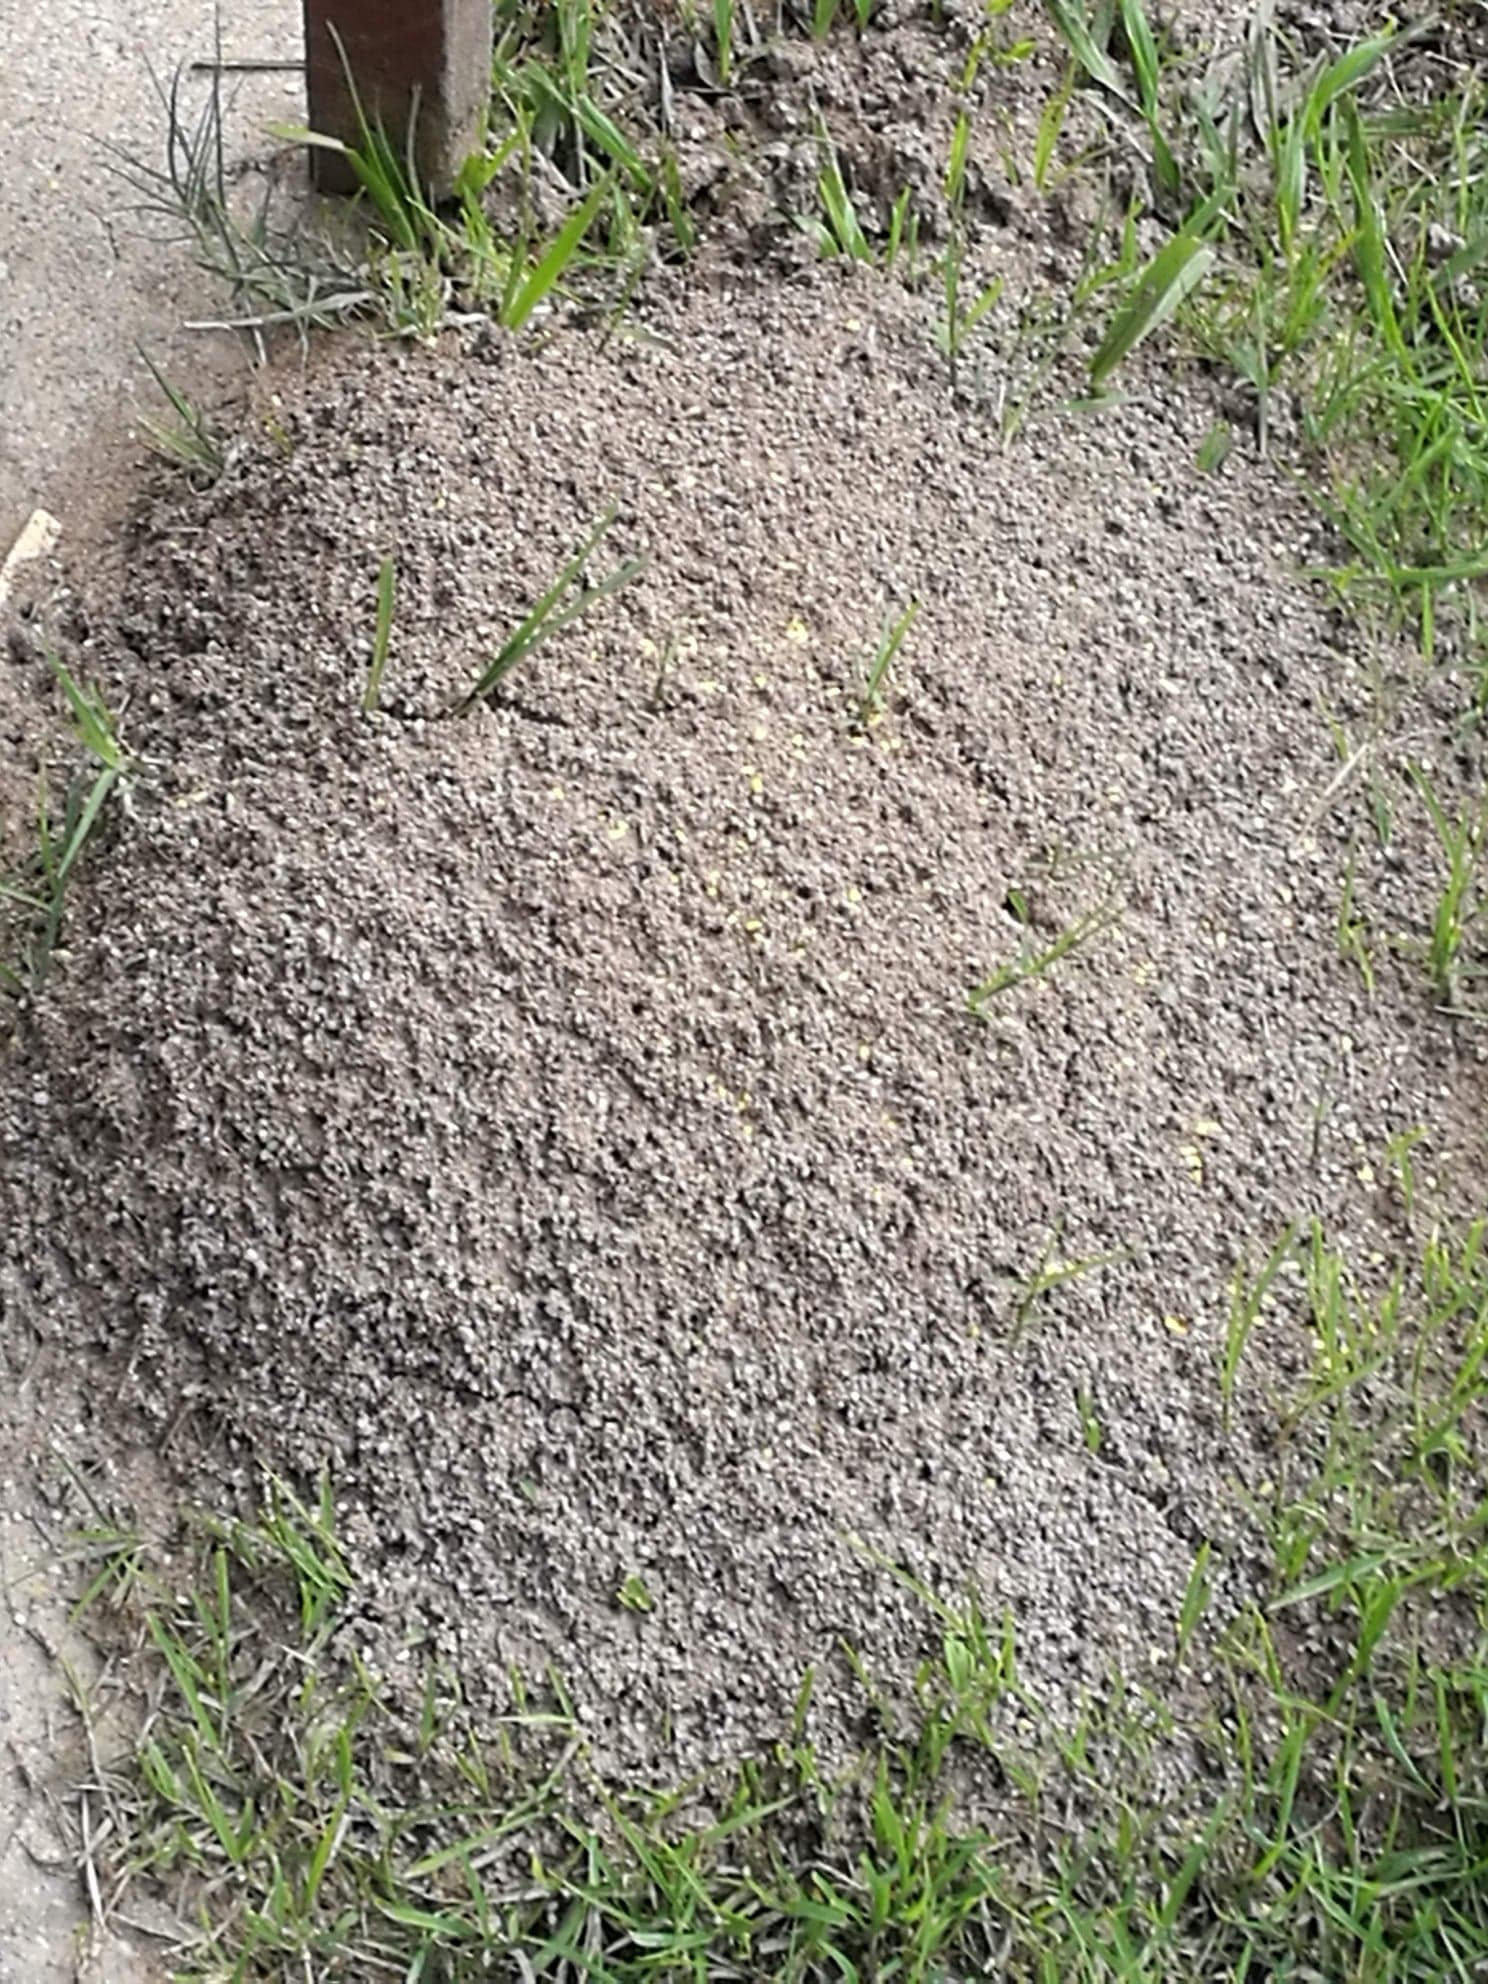 With a backlog of thousands of untreated fire ant nests Biosecurity Queensland is throwing an expensive cocktail of chemicals at them: to improve the statistics rather than kill ants. Time for a Royal Commission.